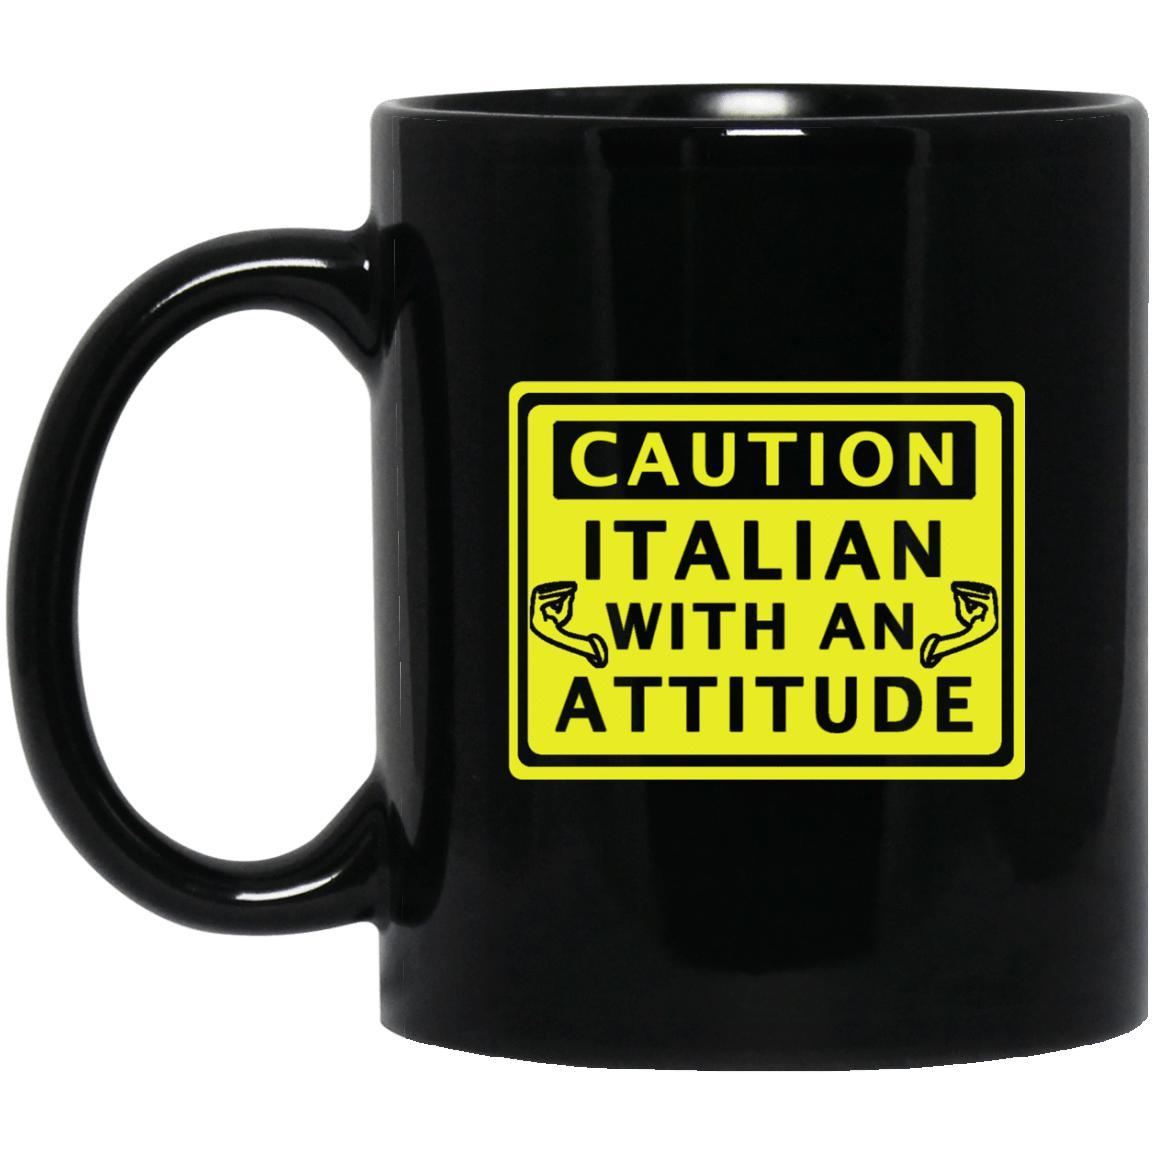 Caution Italian Mugs